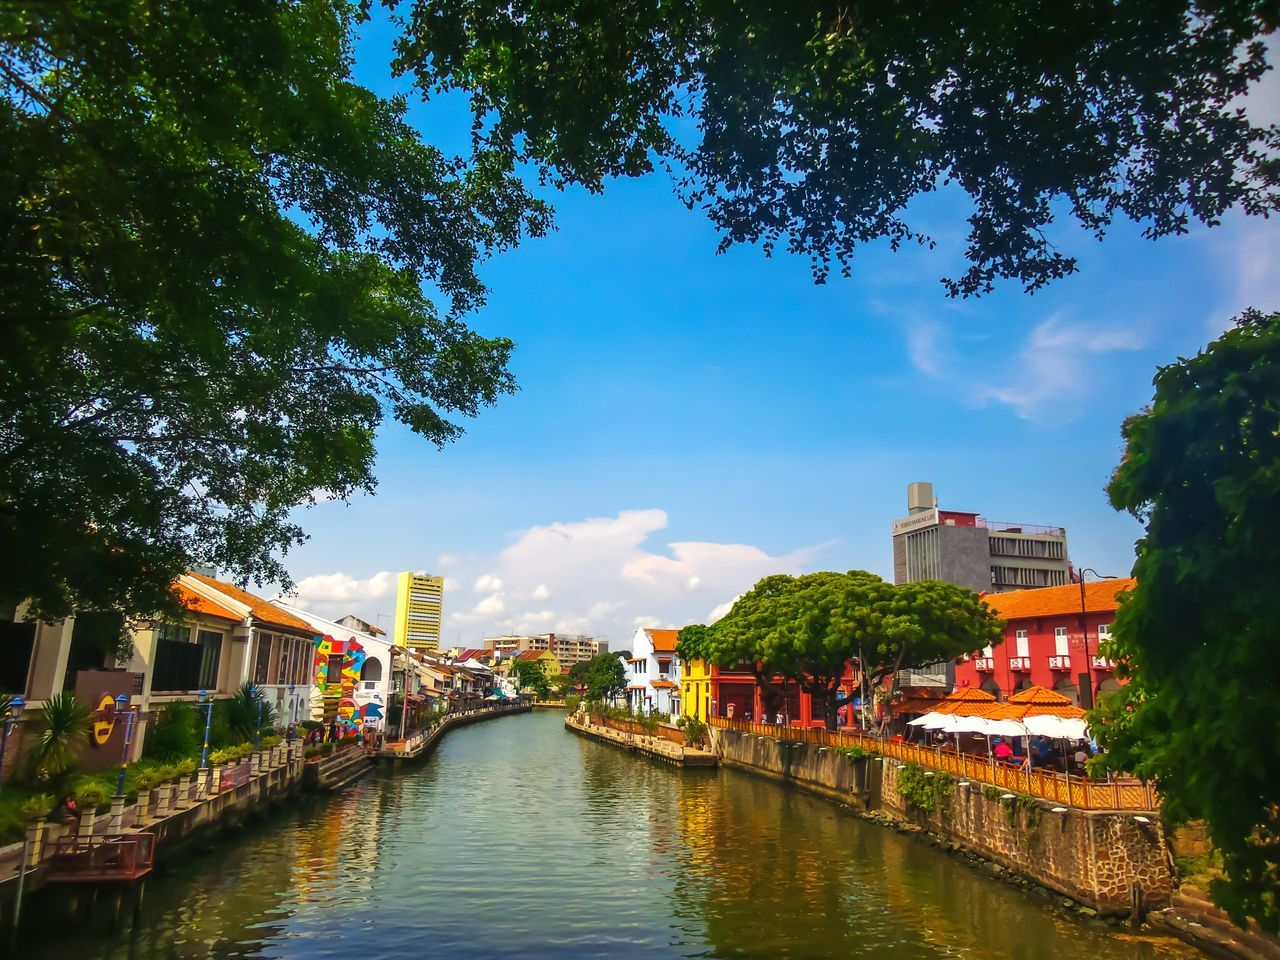 River in the town of malacca, Malaysia. ASIA Beautiful Building Malaysia Destination City Town River Street Tree Water Wall Watertown Traditional Bridge Tourism Painting Outdoors Sky Cloud Nature View Landscape House Travel